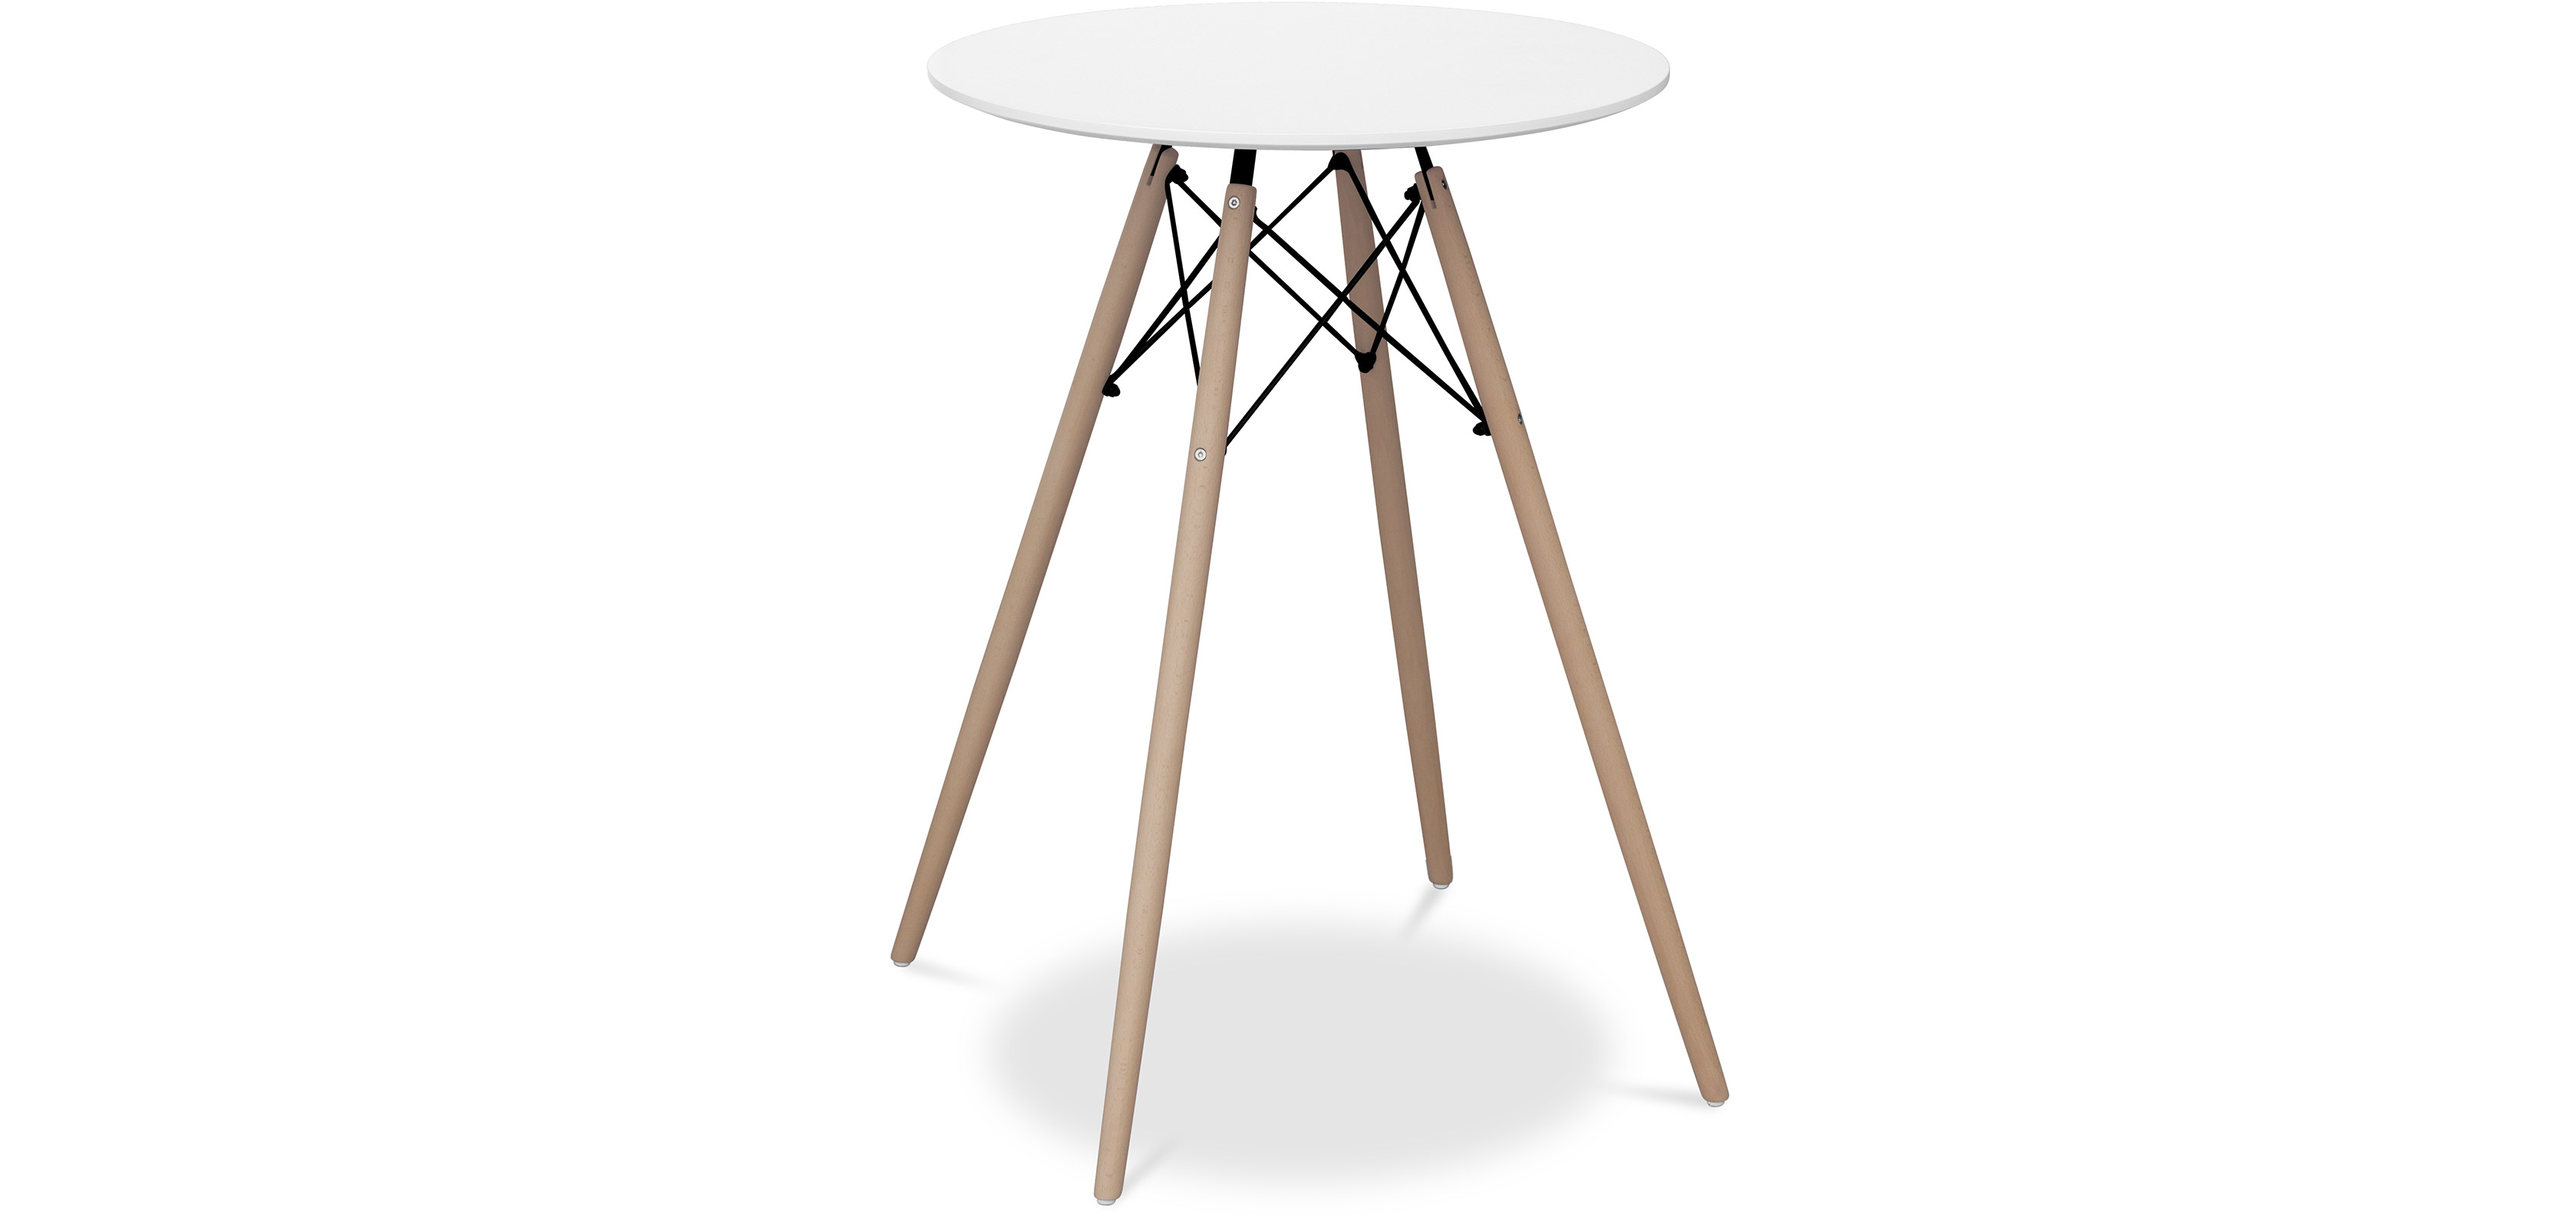 Buy Deswood High table for bar stool White 58378 - in the EU